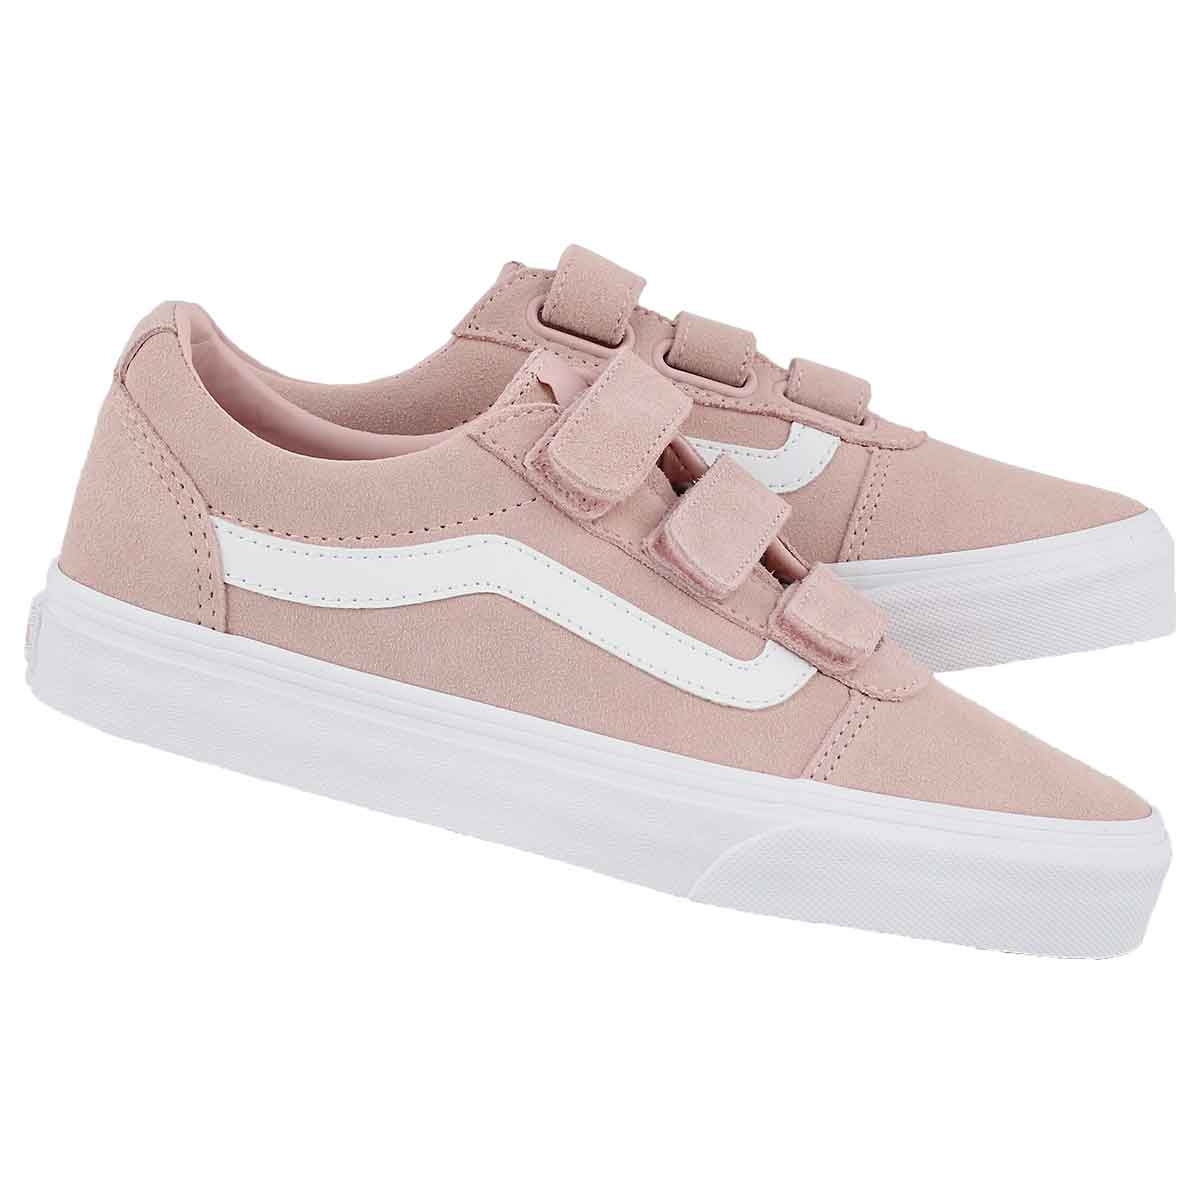 Cheap Geniue Stockist Sast Cheap Online Gola Coaster Hook and Loop Sneaker(Children's) -Off White/Off White Canvas Free Shipping Best Wholesale Extremely Cheap Online YjGiBIR